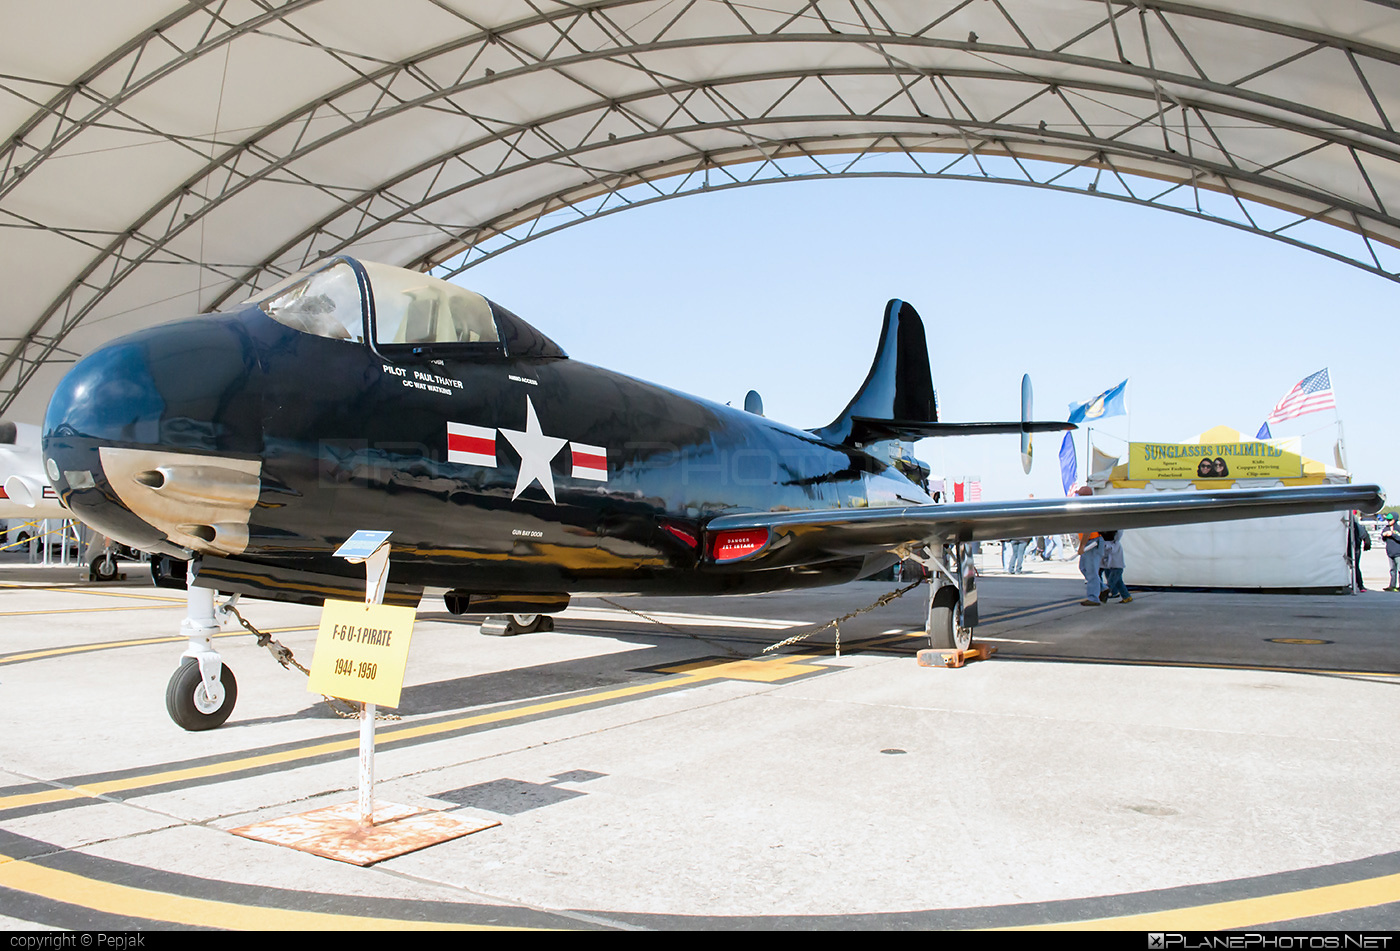 Vought F6U-1 Pirate - 122479 operated by US Navy (USN) #vought